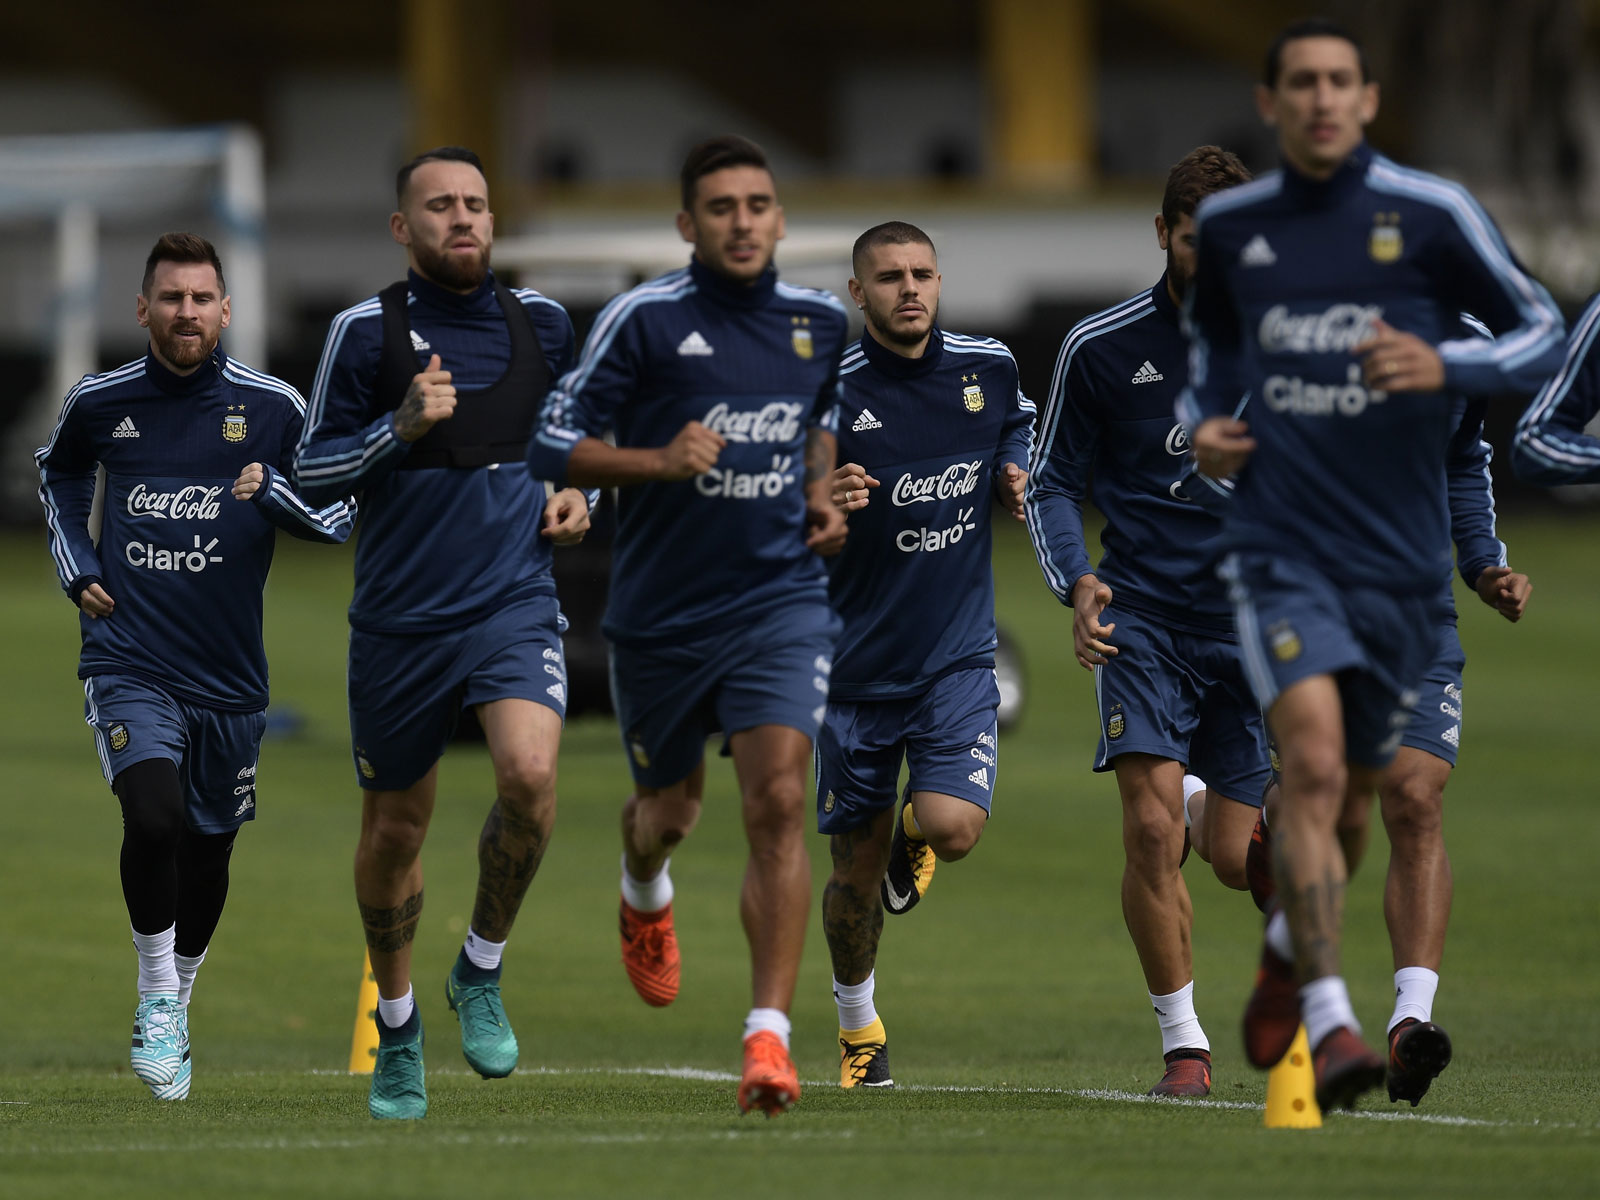 Argentina is hoping to qualify for the 2018 World Cup